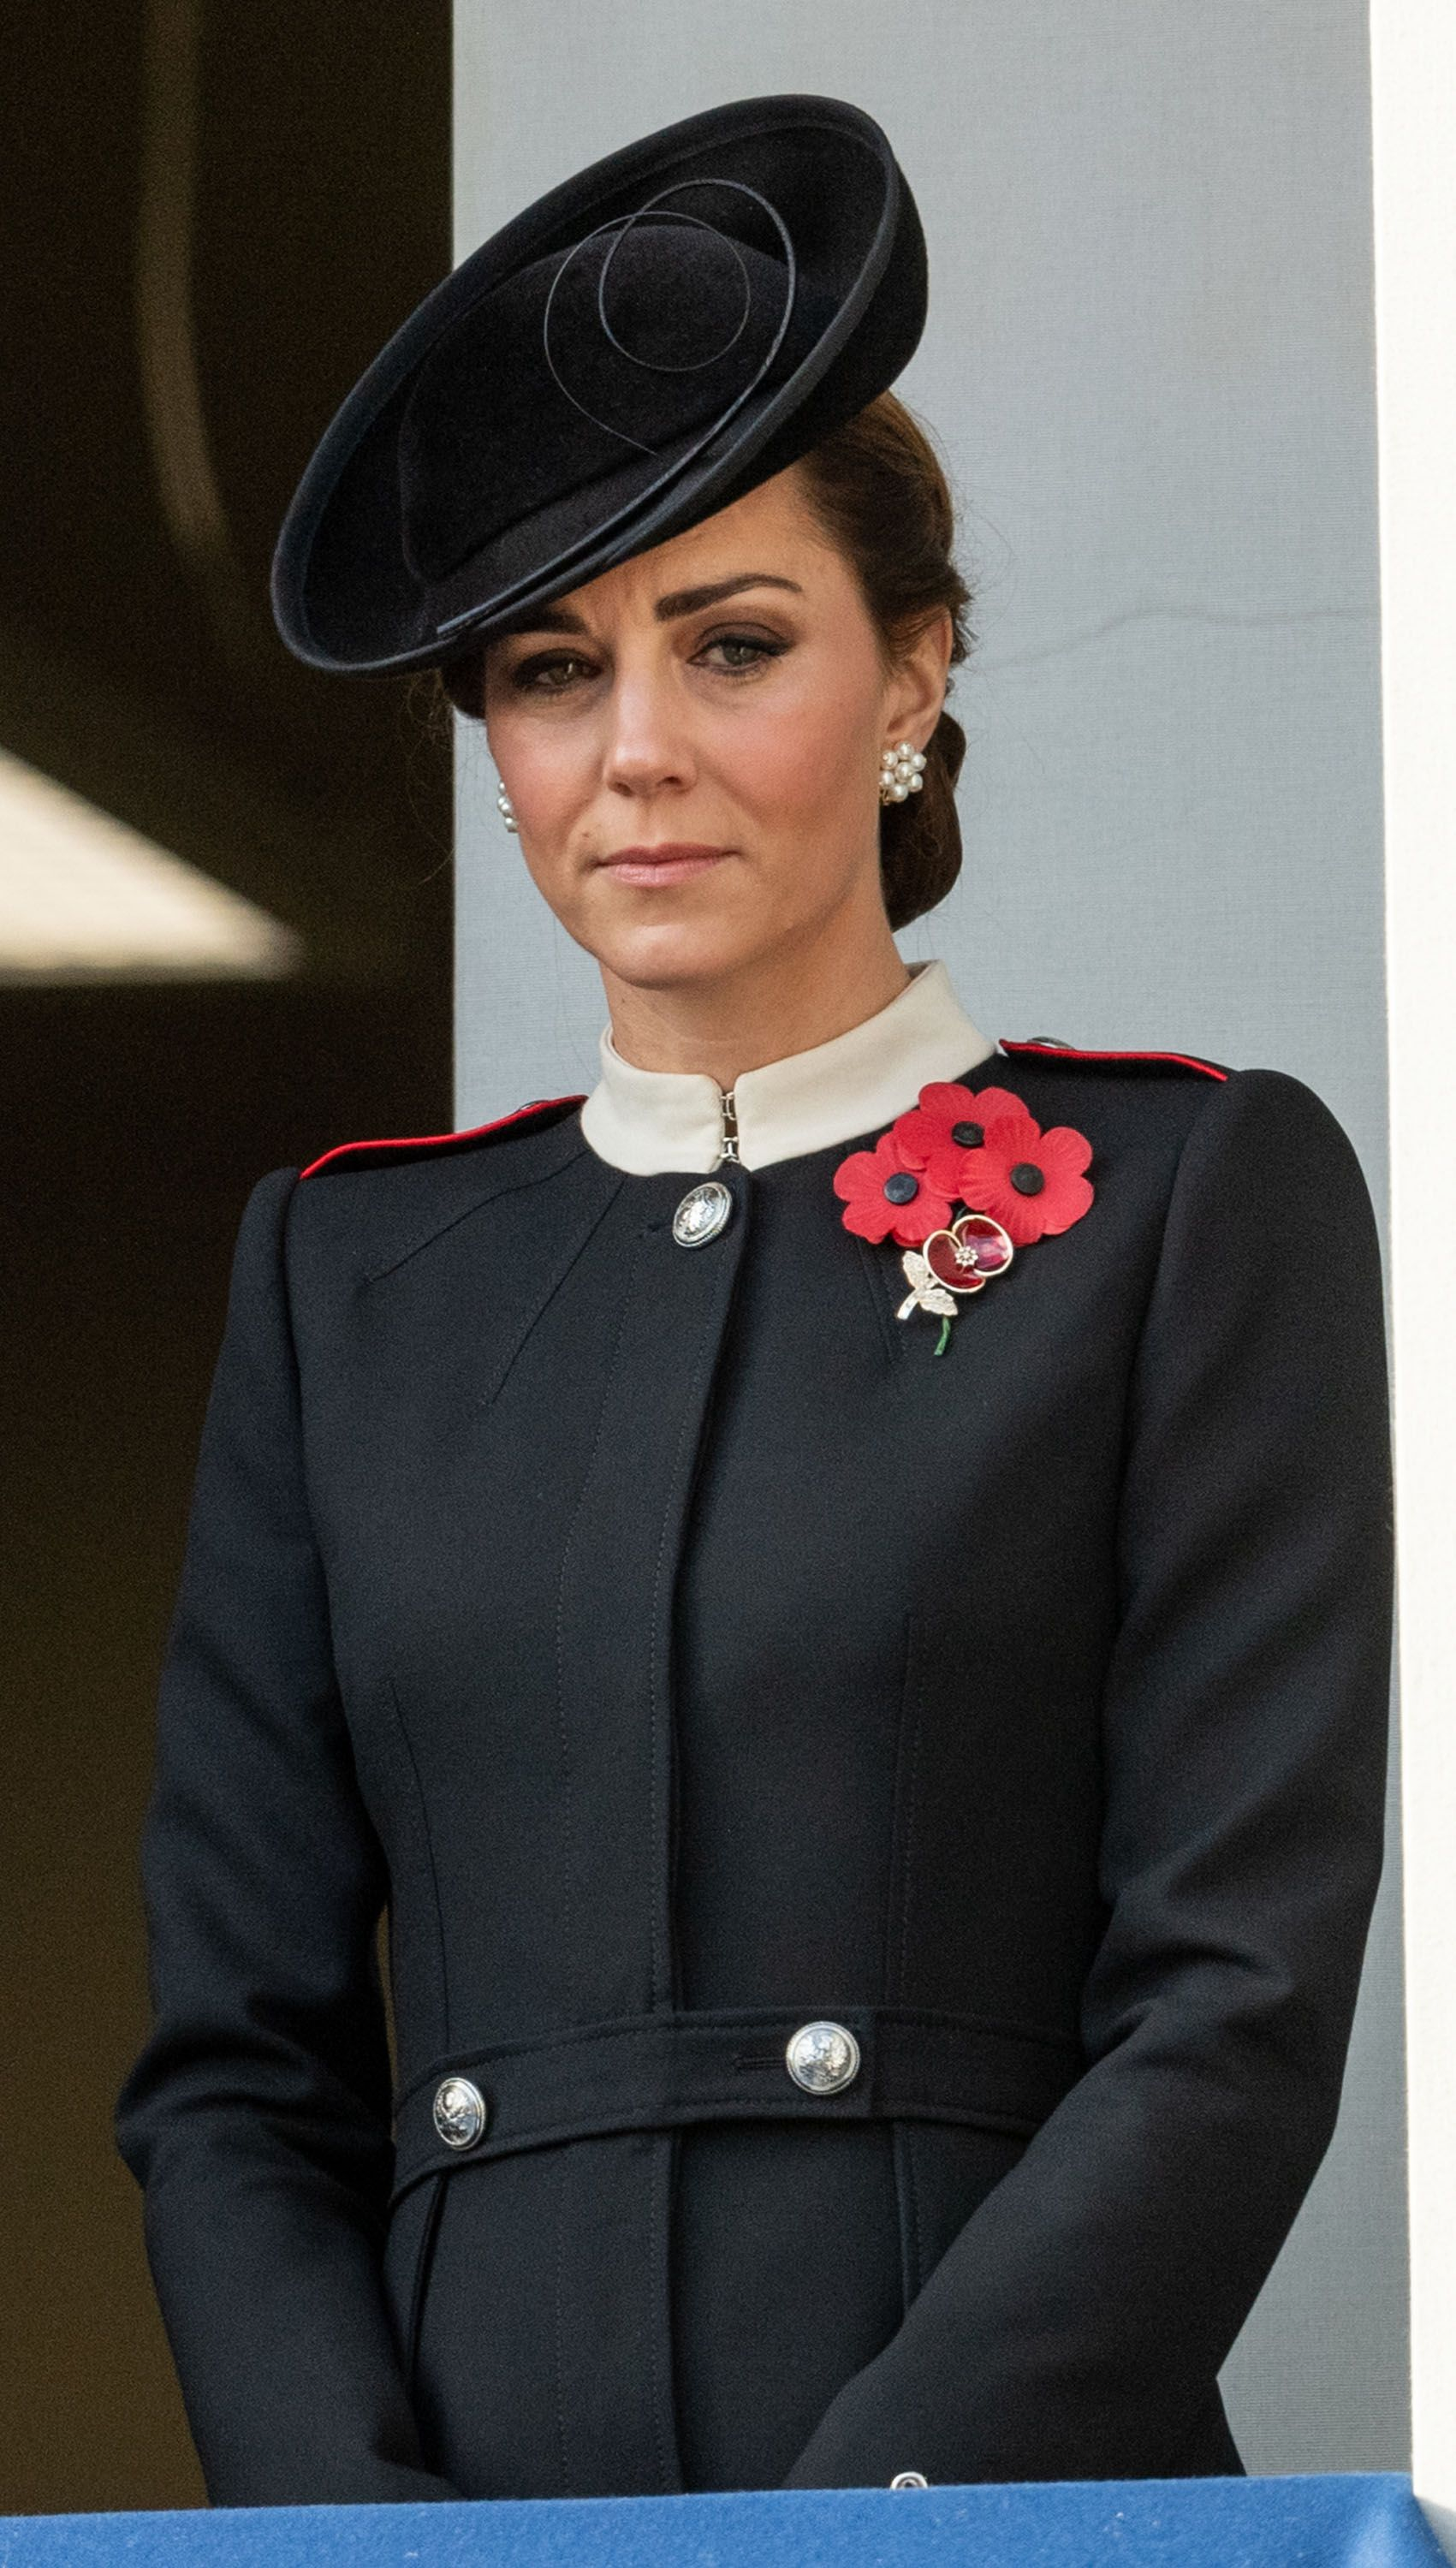 99289e9797468 Kate Middleton s Best Fashion Looks - Duchess of Cambridge s Chic Outfits